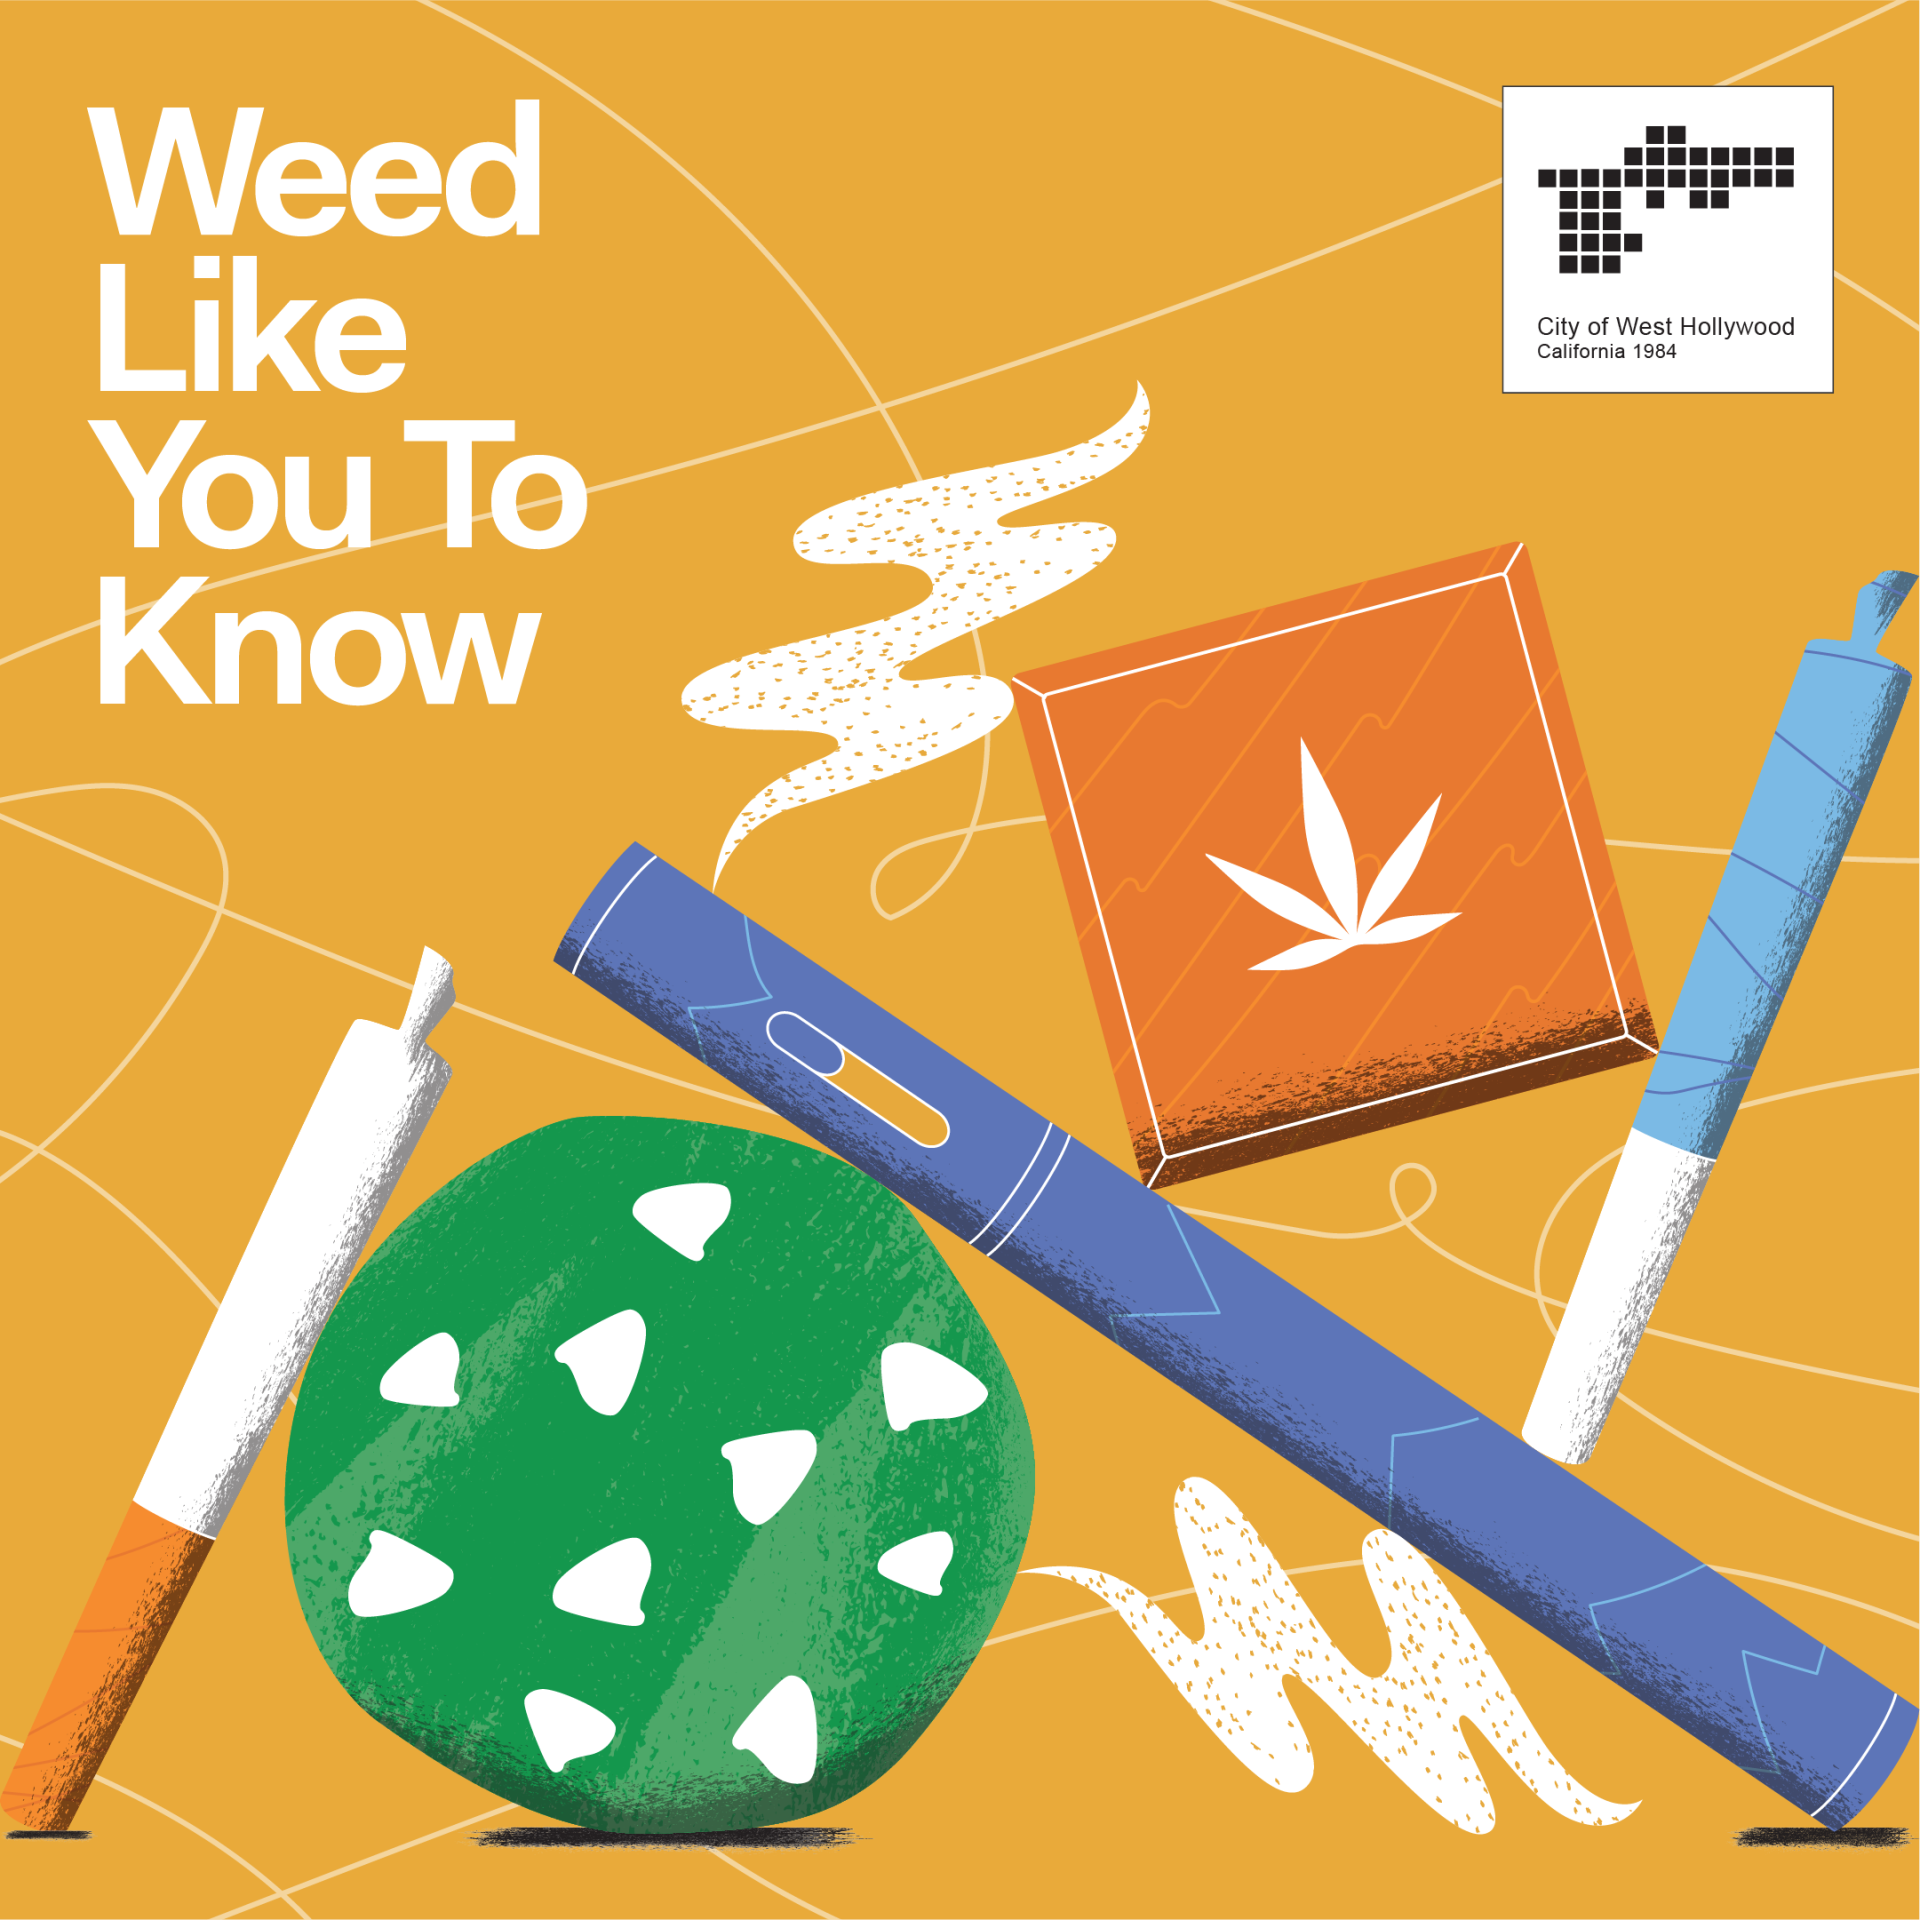 Weed Like You to Know